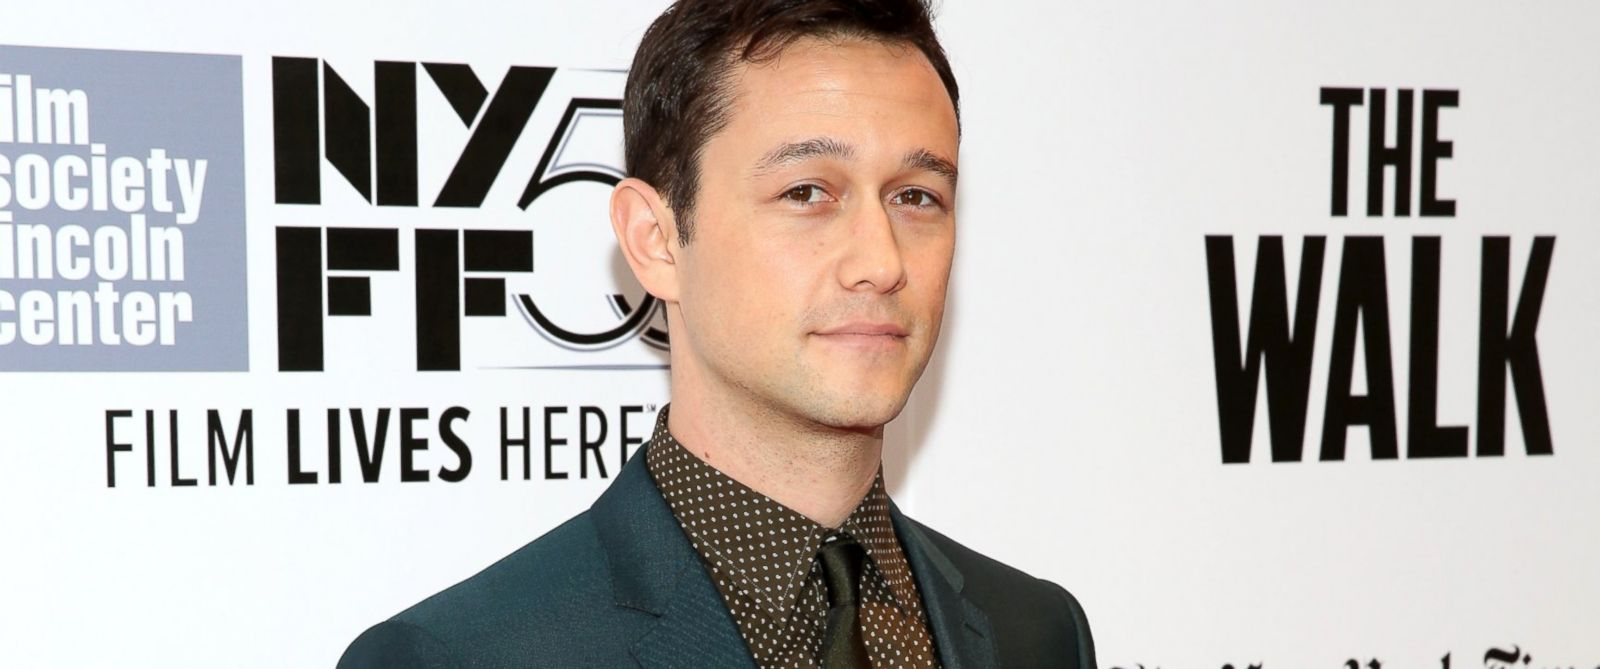 Why Joseph Gordon Levitt Is 'Uncomfortable' With Fame, Rarely ... Joseph Gordon Levitt